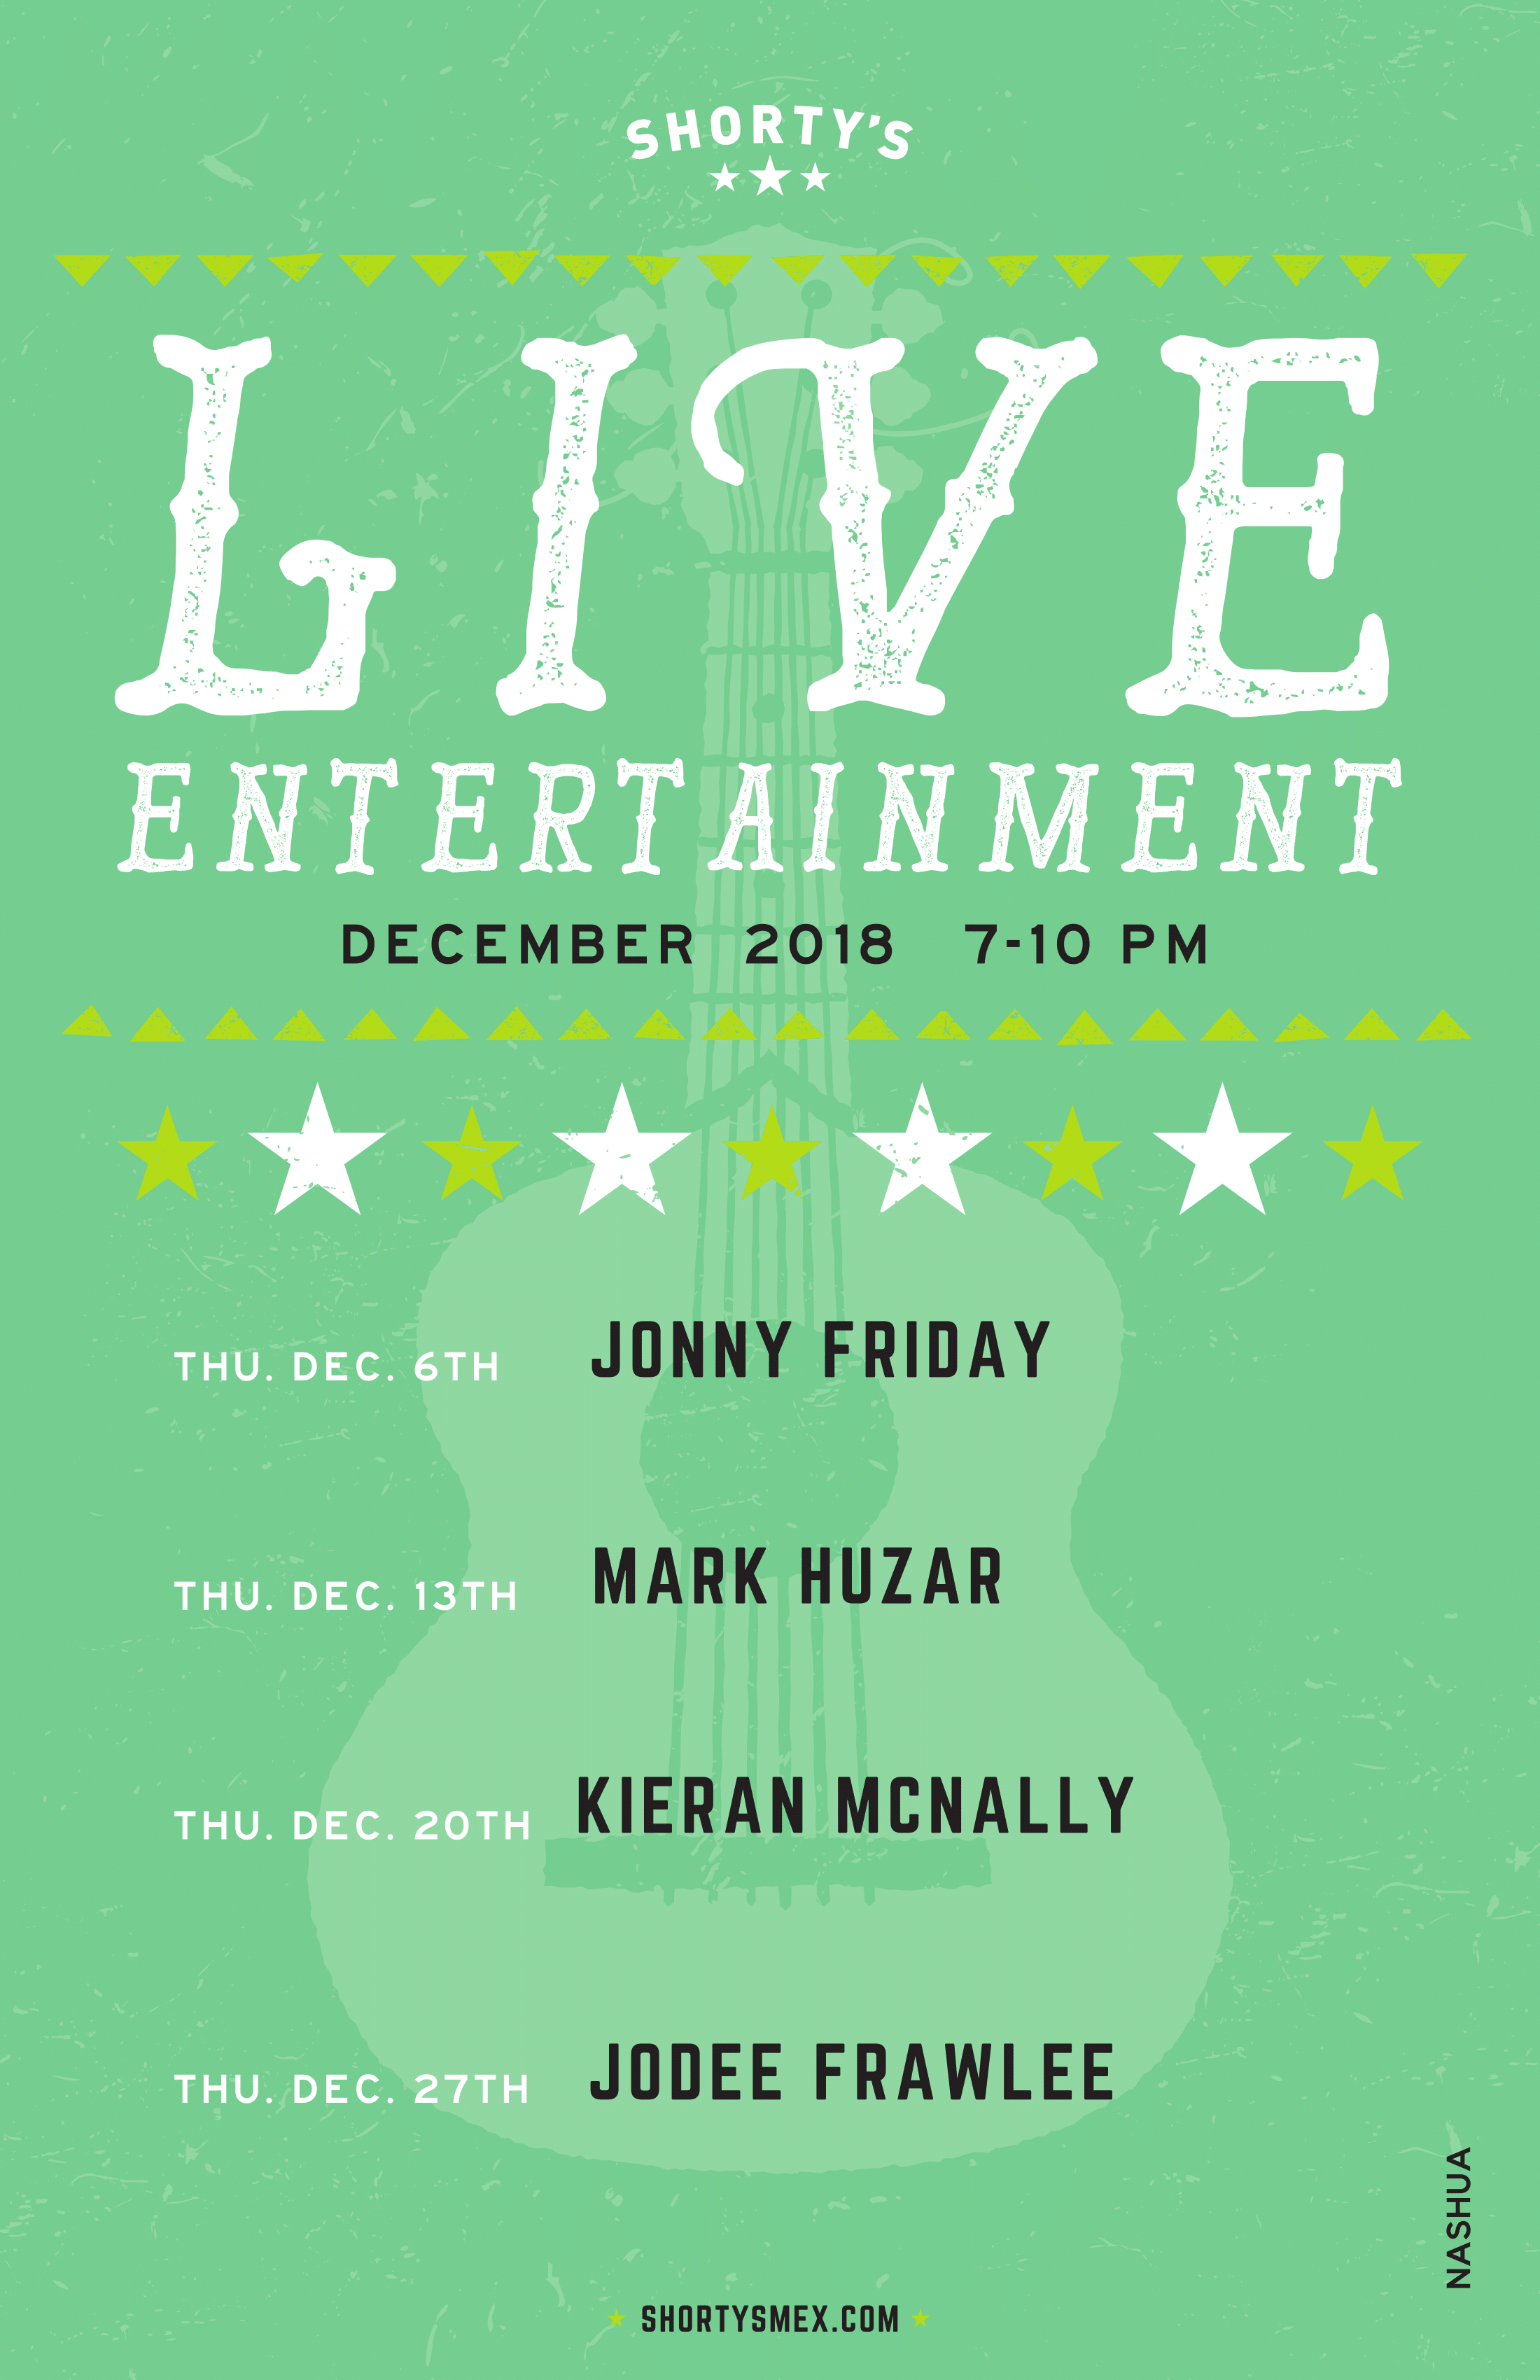 Shorty's Live Entertainment Calendar - December in Nashua